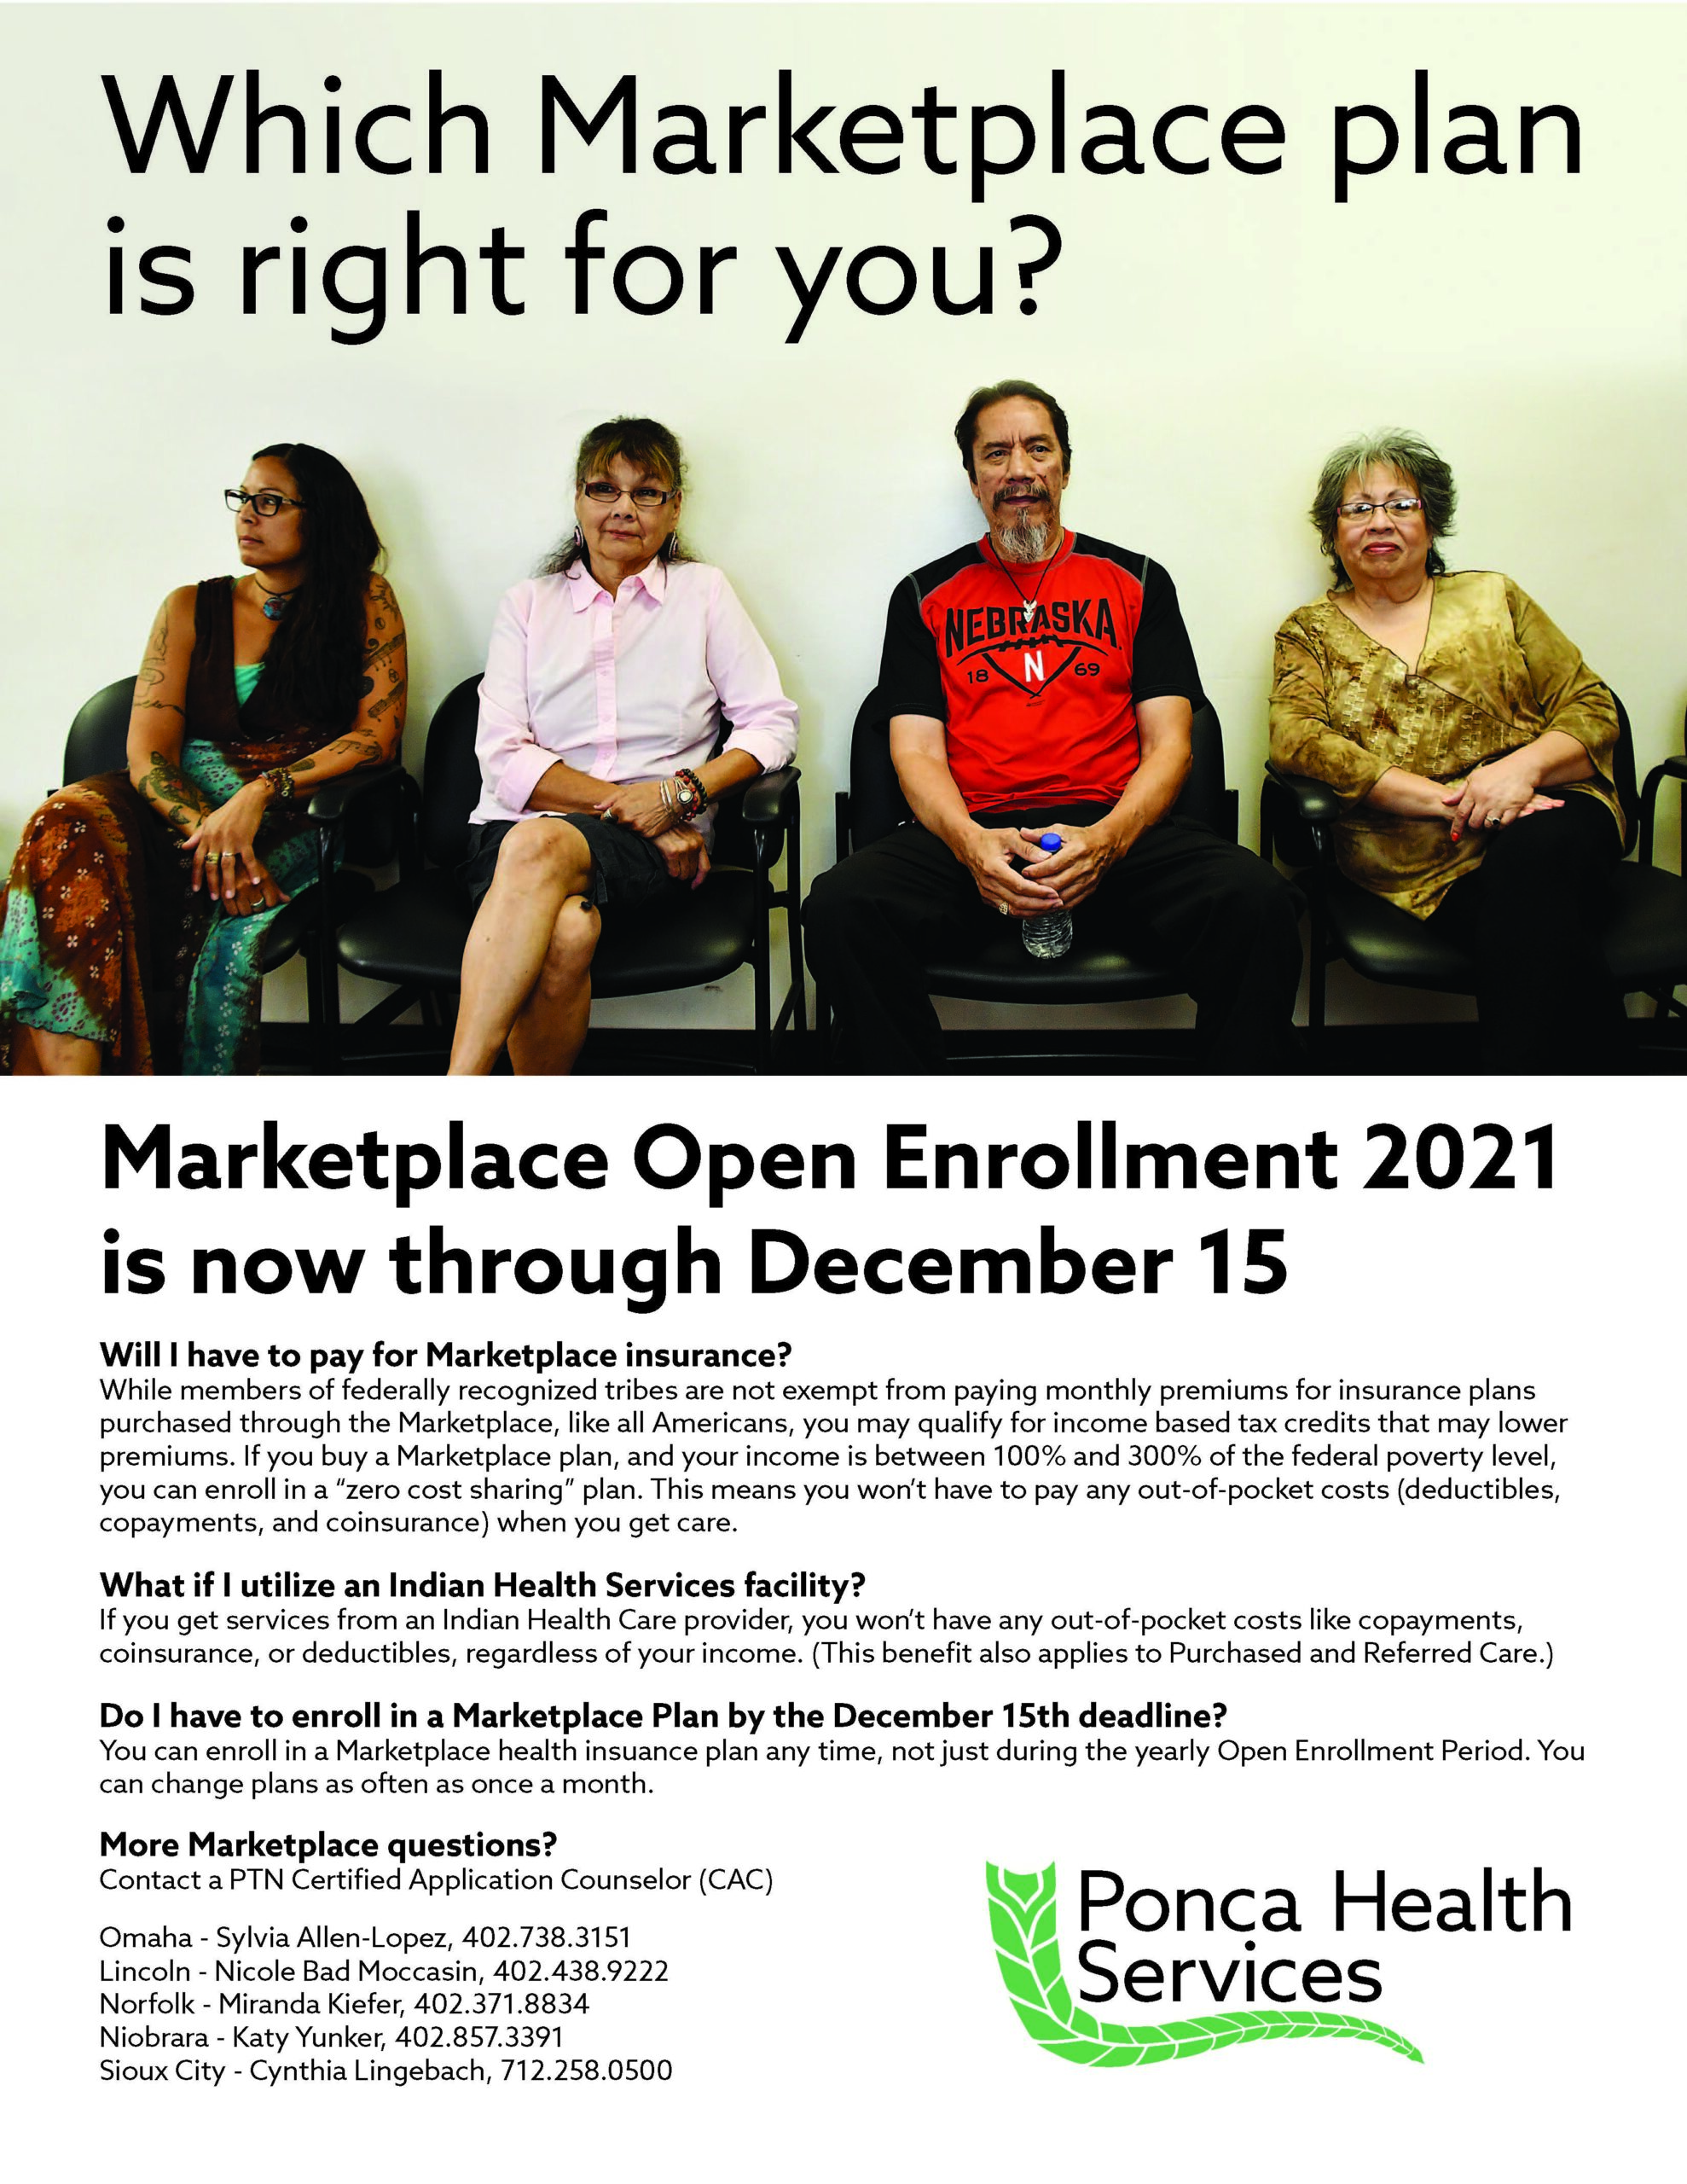 Marketplace Open Enrollment 2021 is now through December 15.